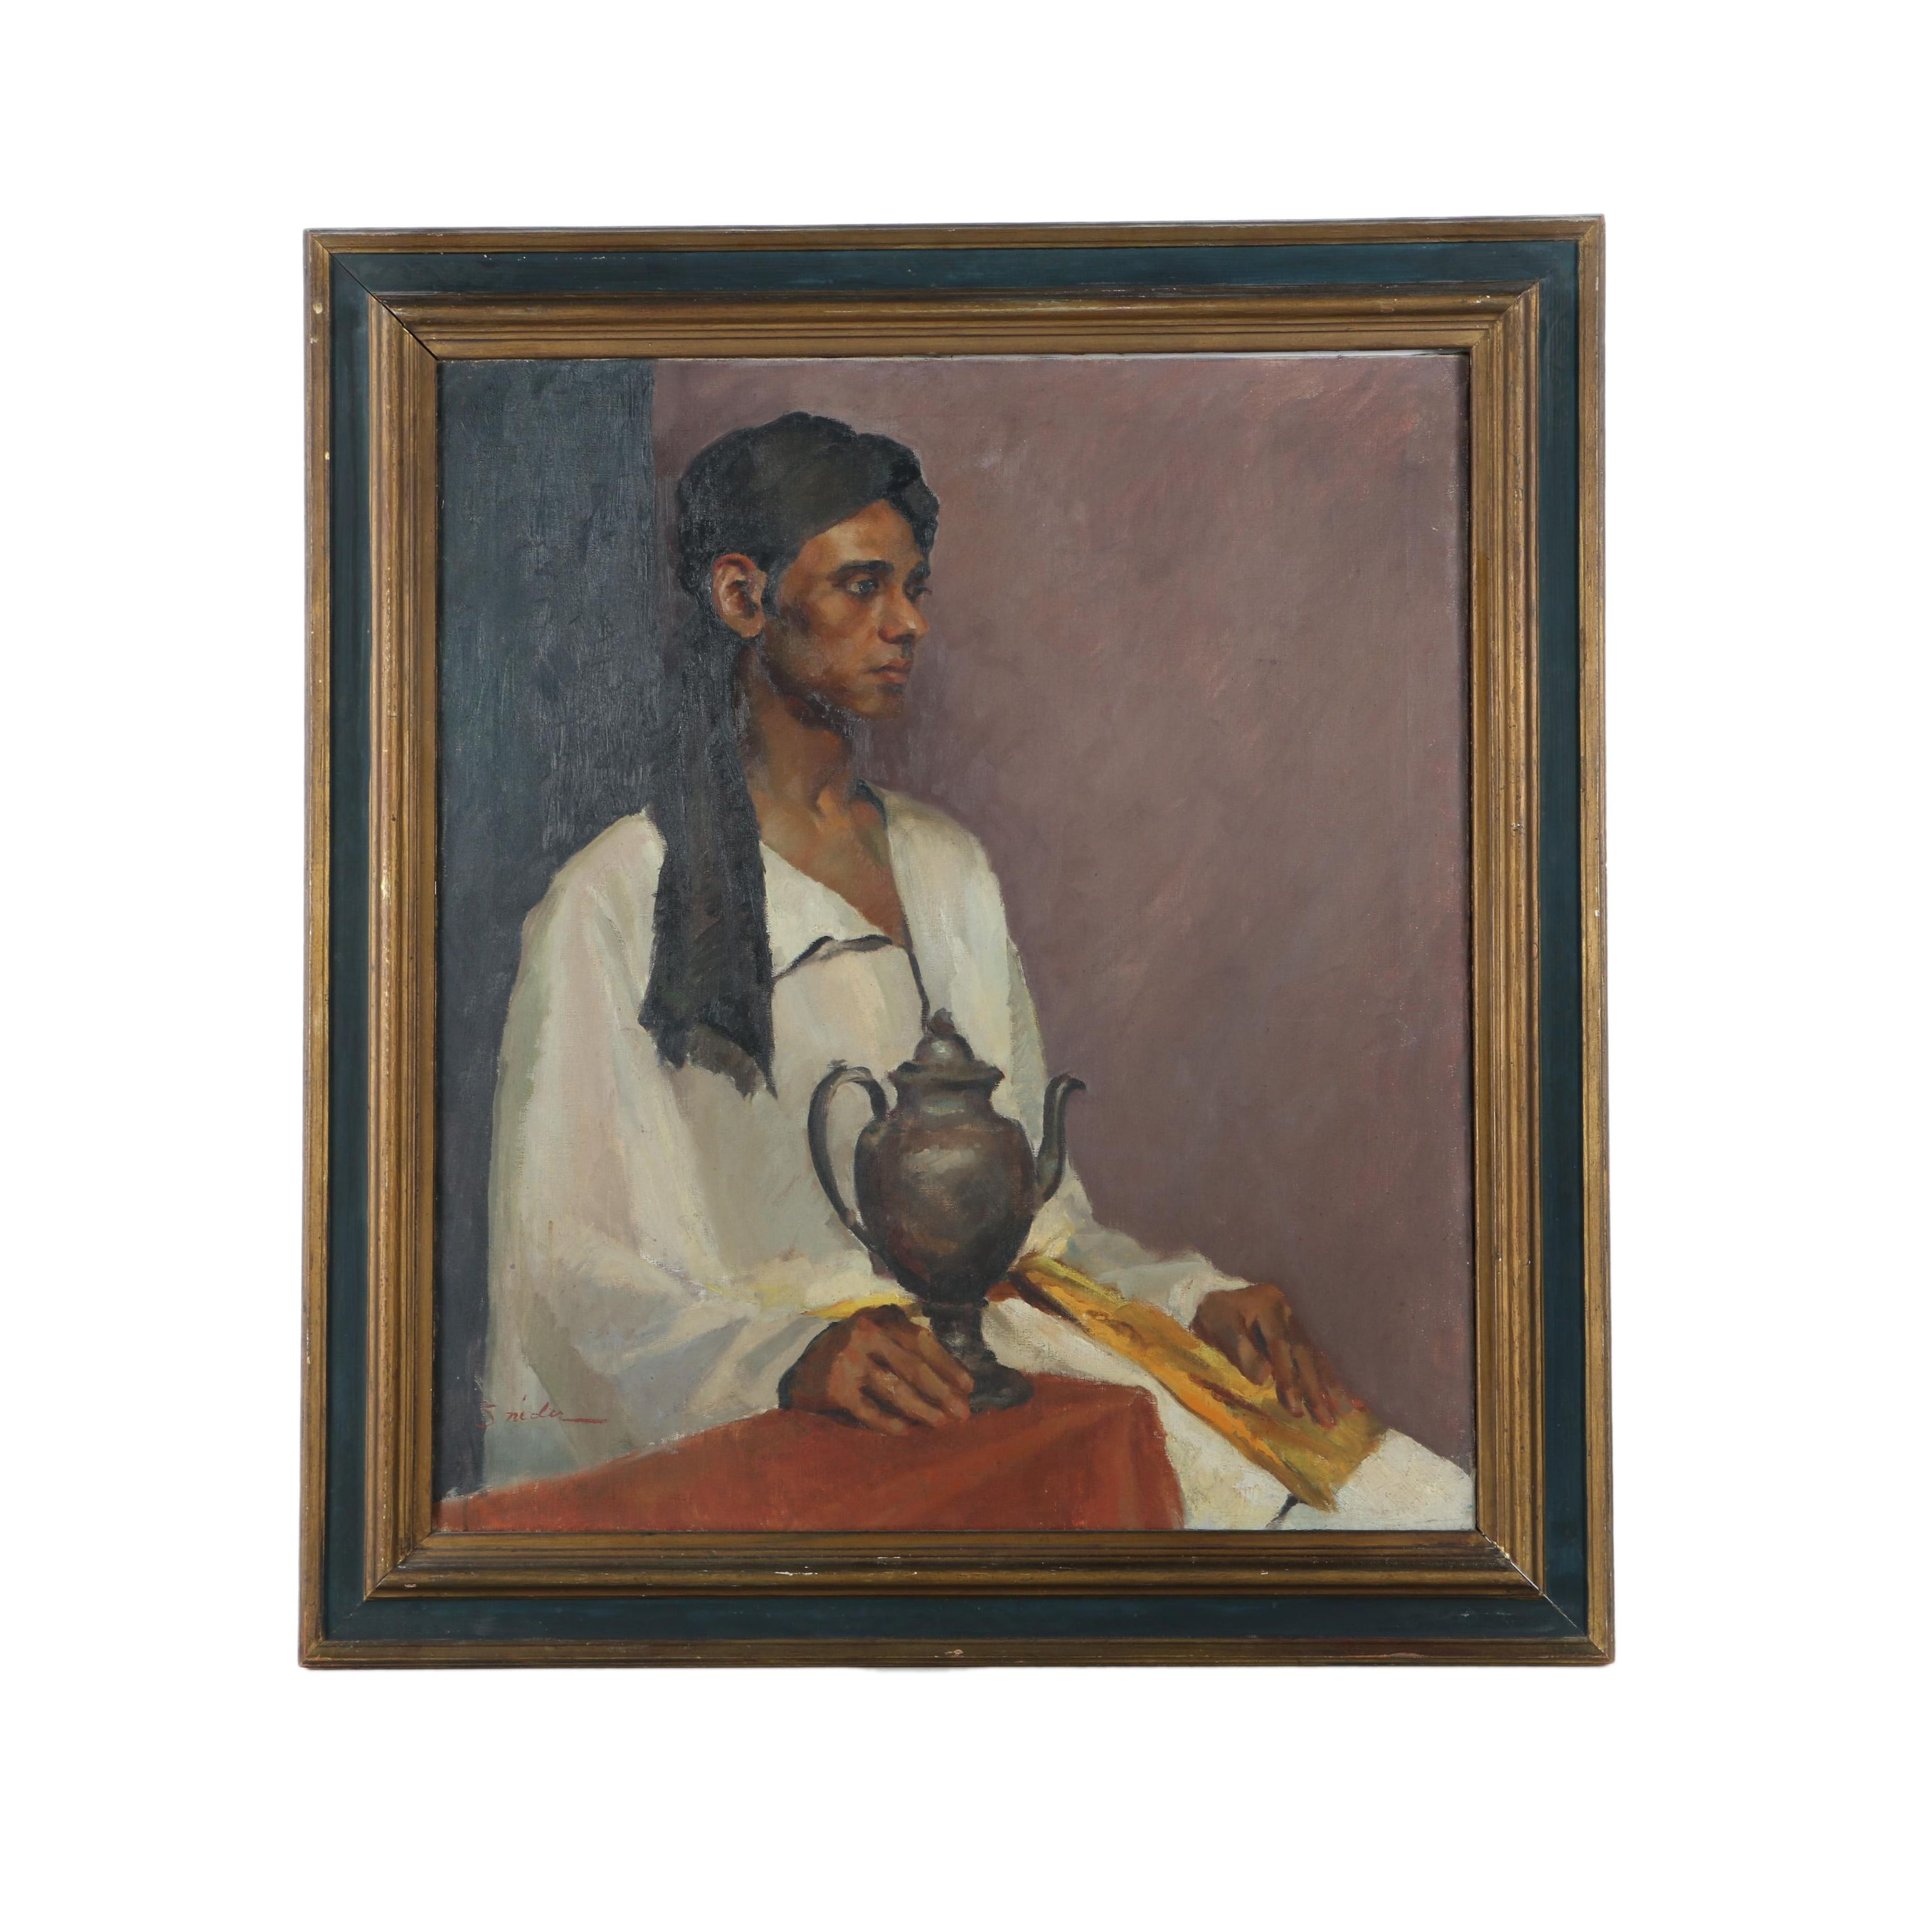 Snider Oil Painting on Canvas of a Man Holding a Teapot